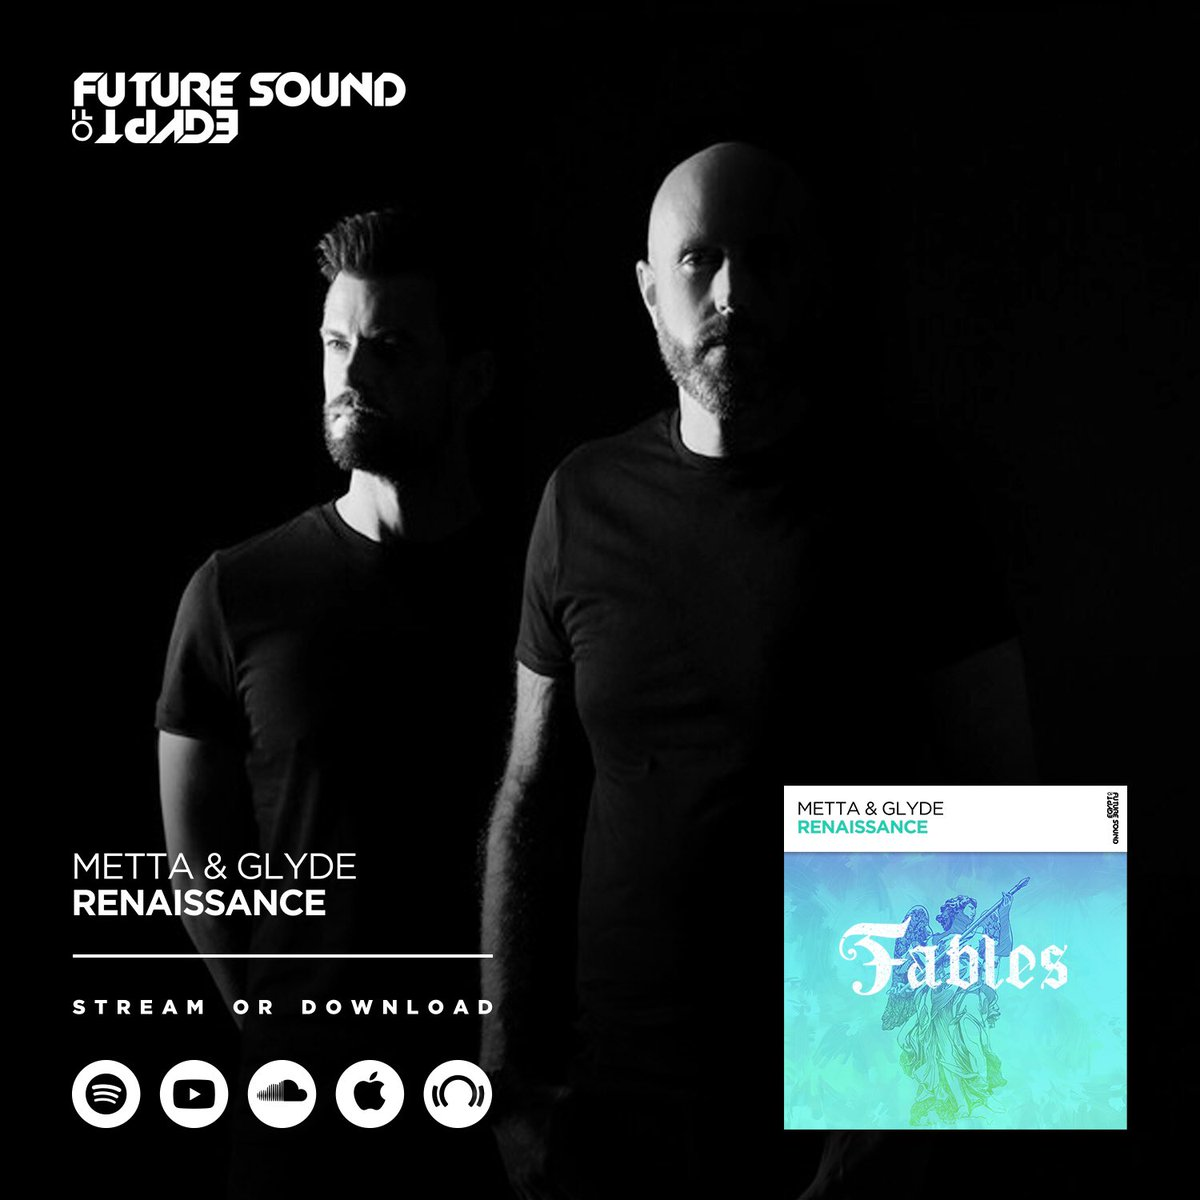 Currently sitting at #2 on the Beatport Trance Chart! Don't forget to grab your copy of one of our biggest trance tracks of this year!  @MettaandGlyde - Renaissance is OUT NOW on Fables 👉 https://t.co/wMgA28cInN https://t.co/MnxyLr5dfC